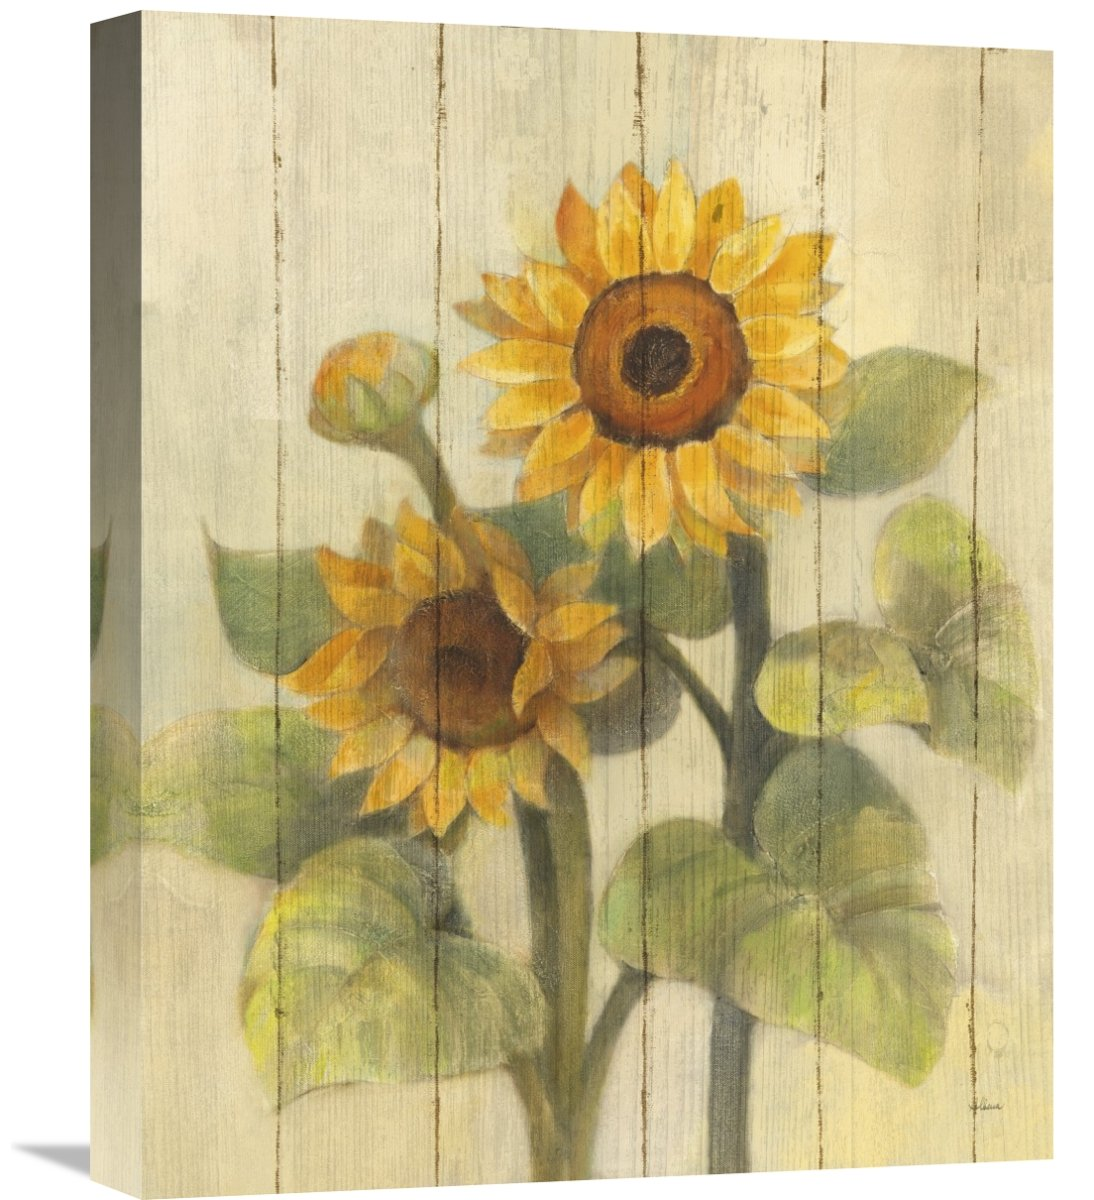 Global GalleryAlbena Hristova Summer Sunflowers II on Barn Board Giclee Stretched Canvas Artwork 16 x 20